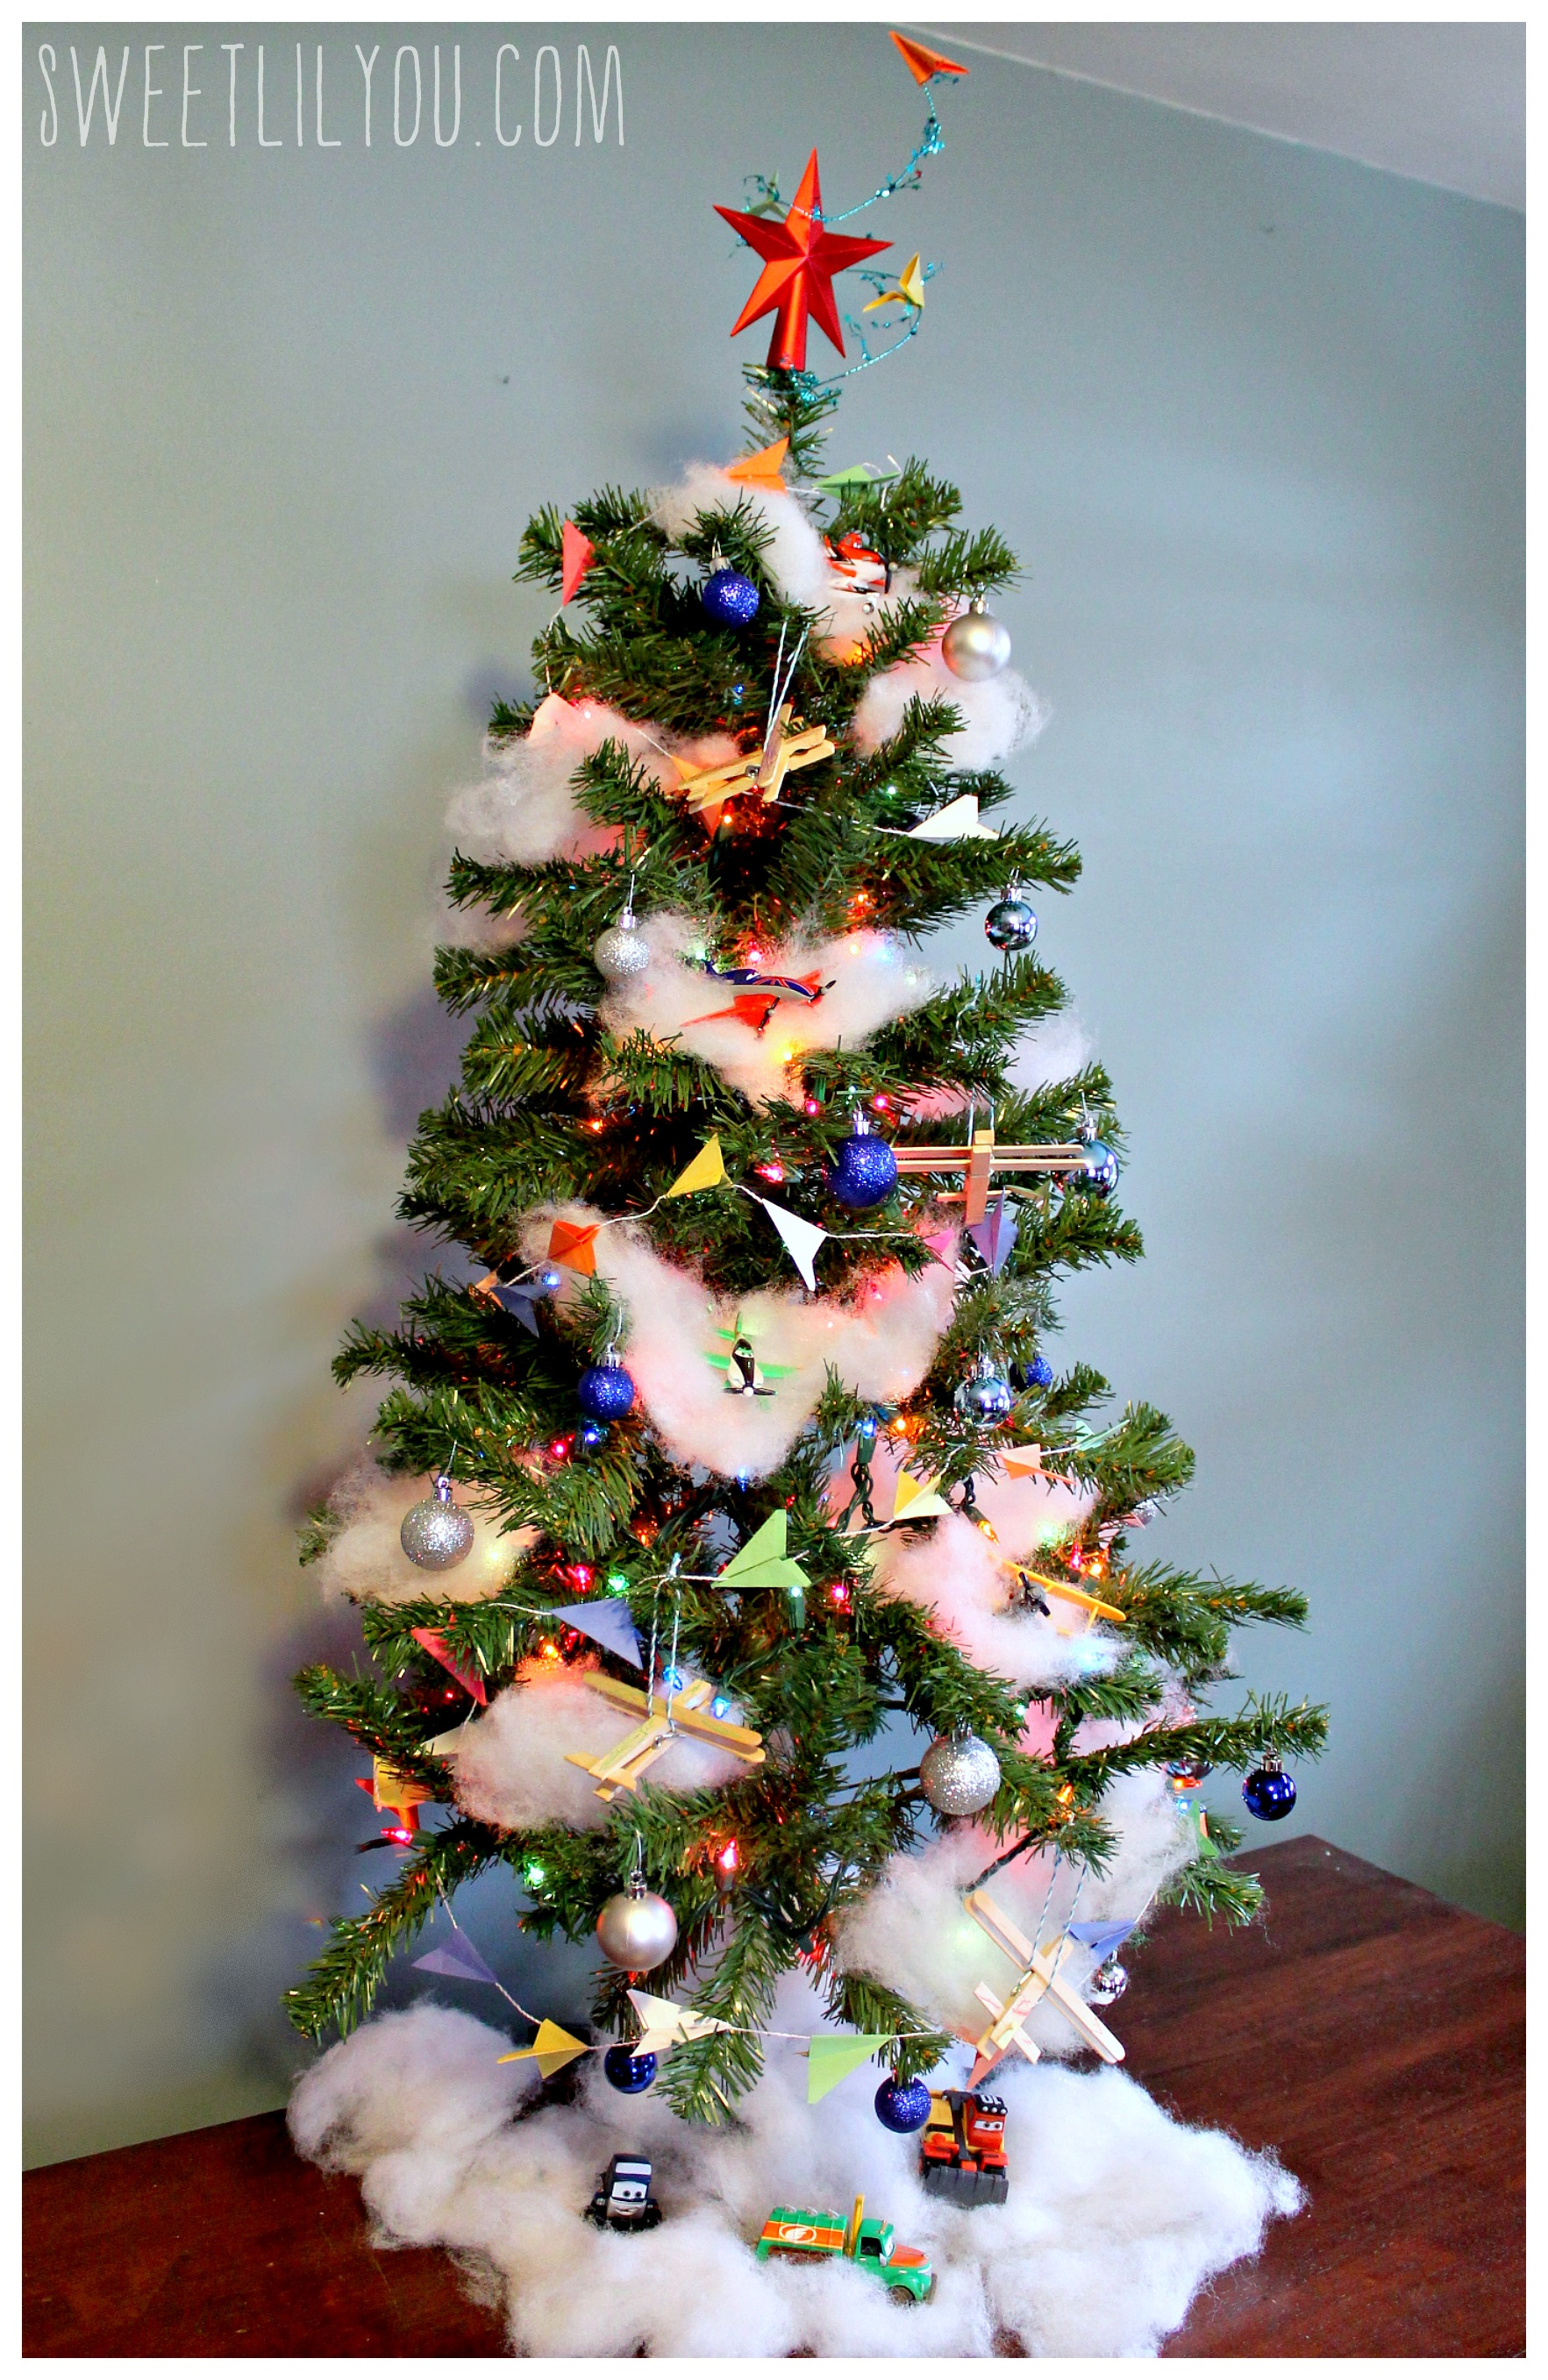 Www Christmas Gift Ideas: Disney Planes Themed Christmas Tree! #PlanesToTheRescue